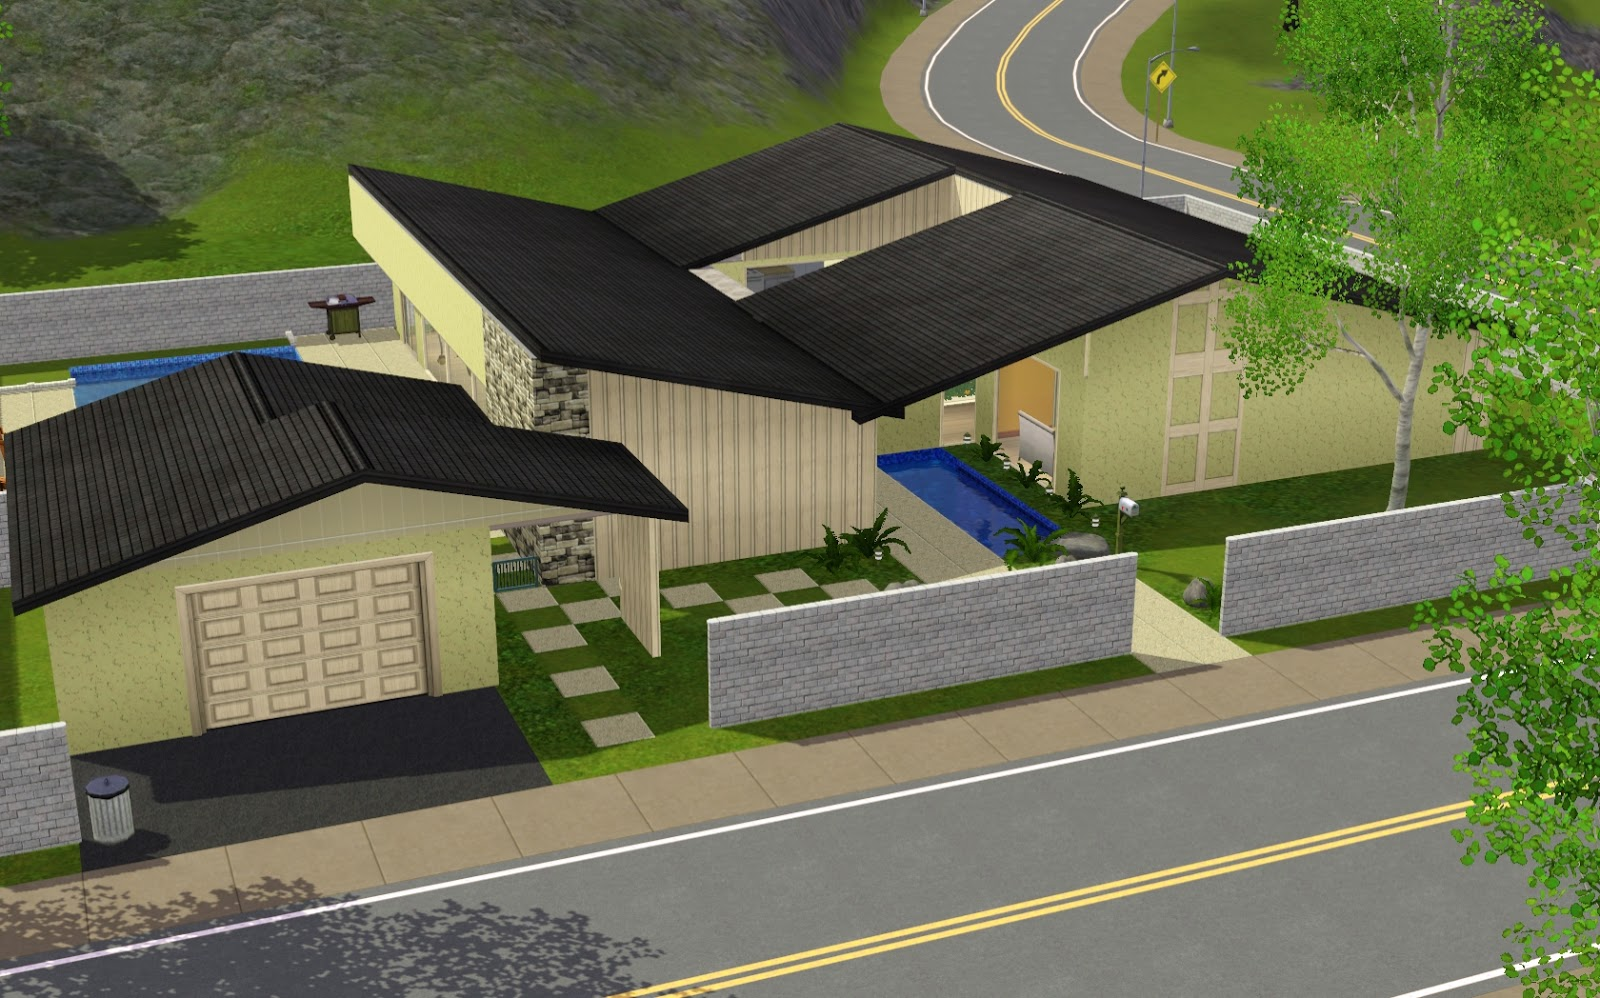 Narrow 2 Bedroom Story House Plans also 3 Story Modern House Plans moreover Townhouse Condo Floor Plans Garage further Three Story House Plans furthermore 6 Bedroom 2 Story Steel Building House Plans. on 3 story beach townhouse plans